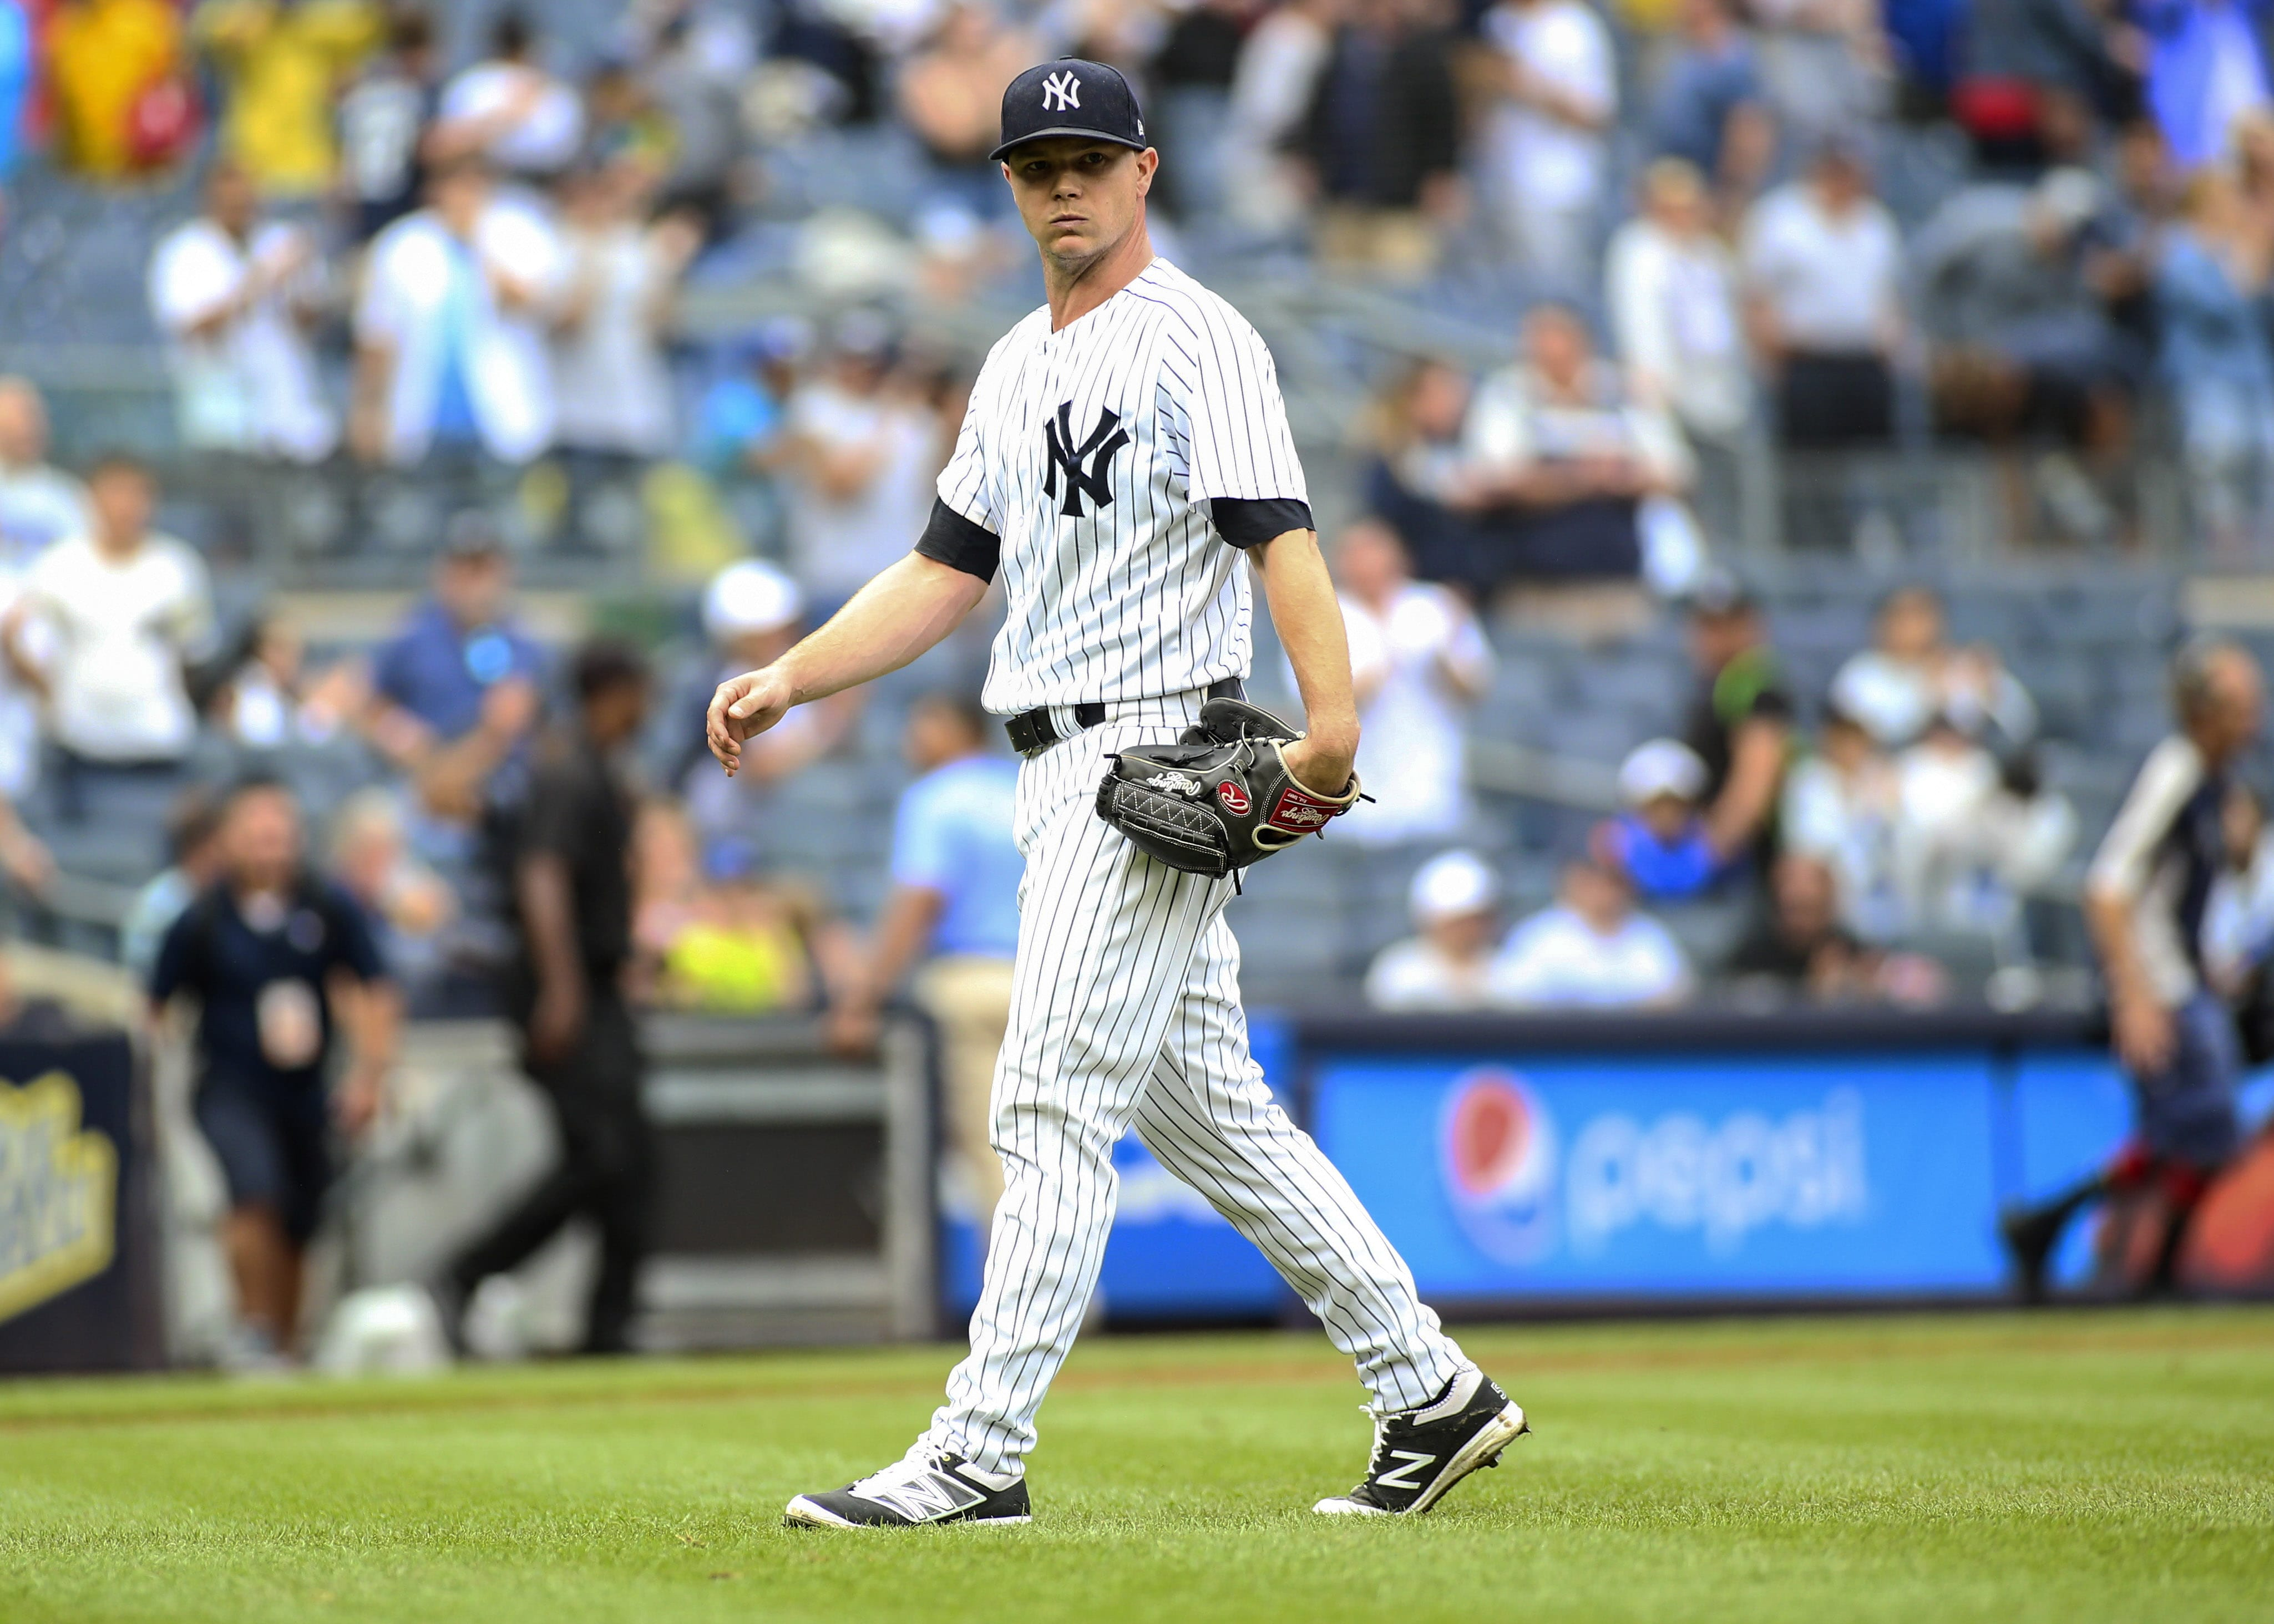 new york yankees could strike deal to send sonny gray to brewers